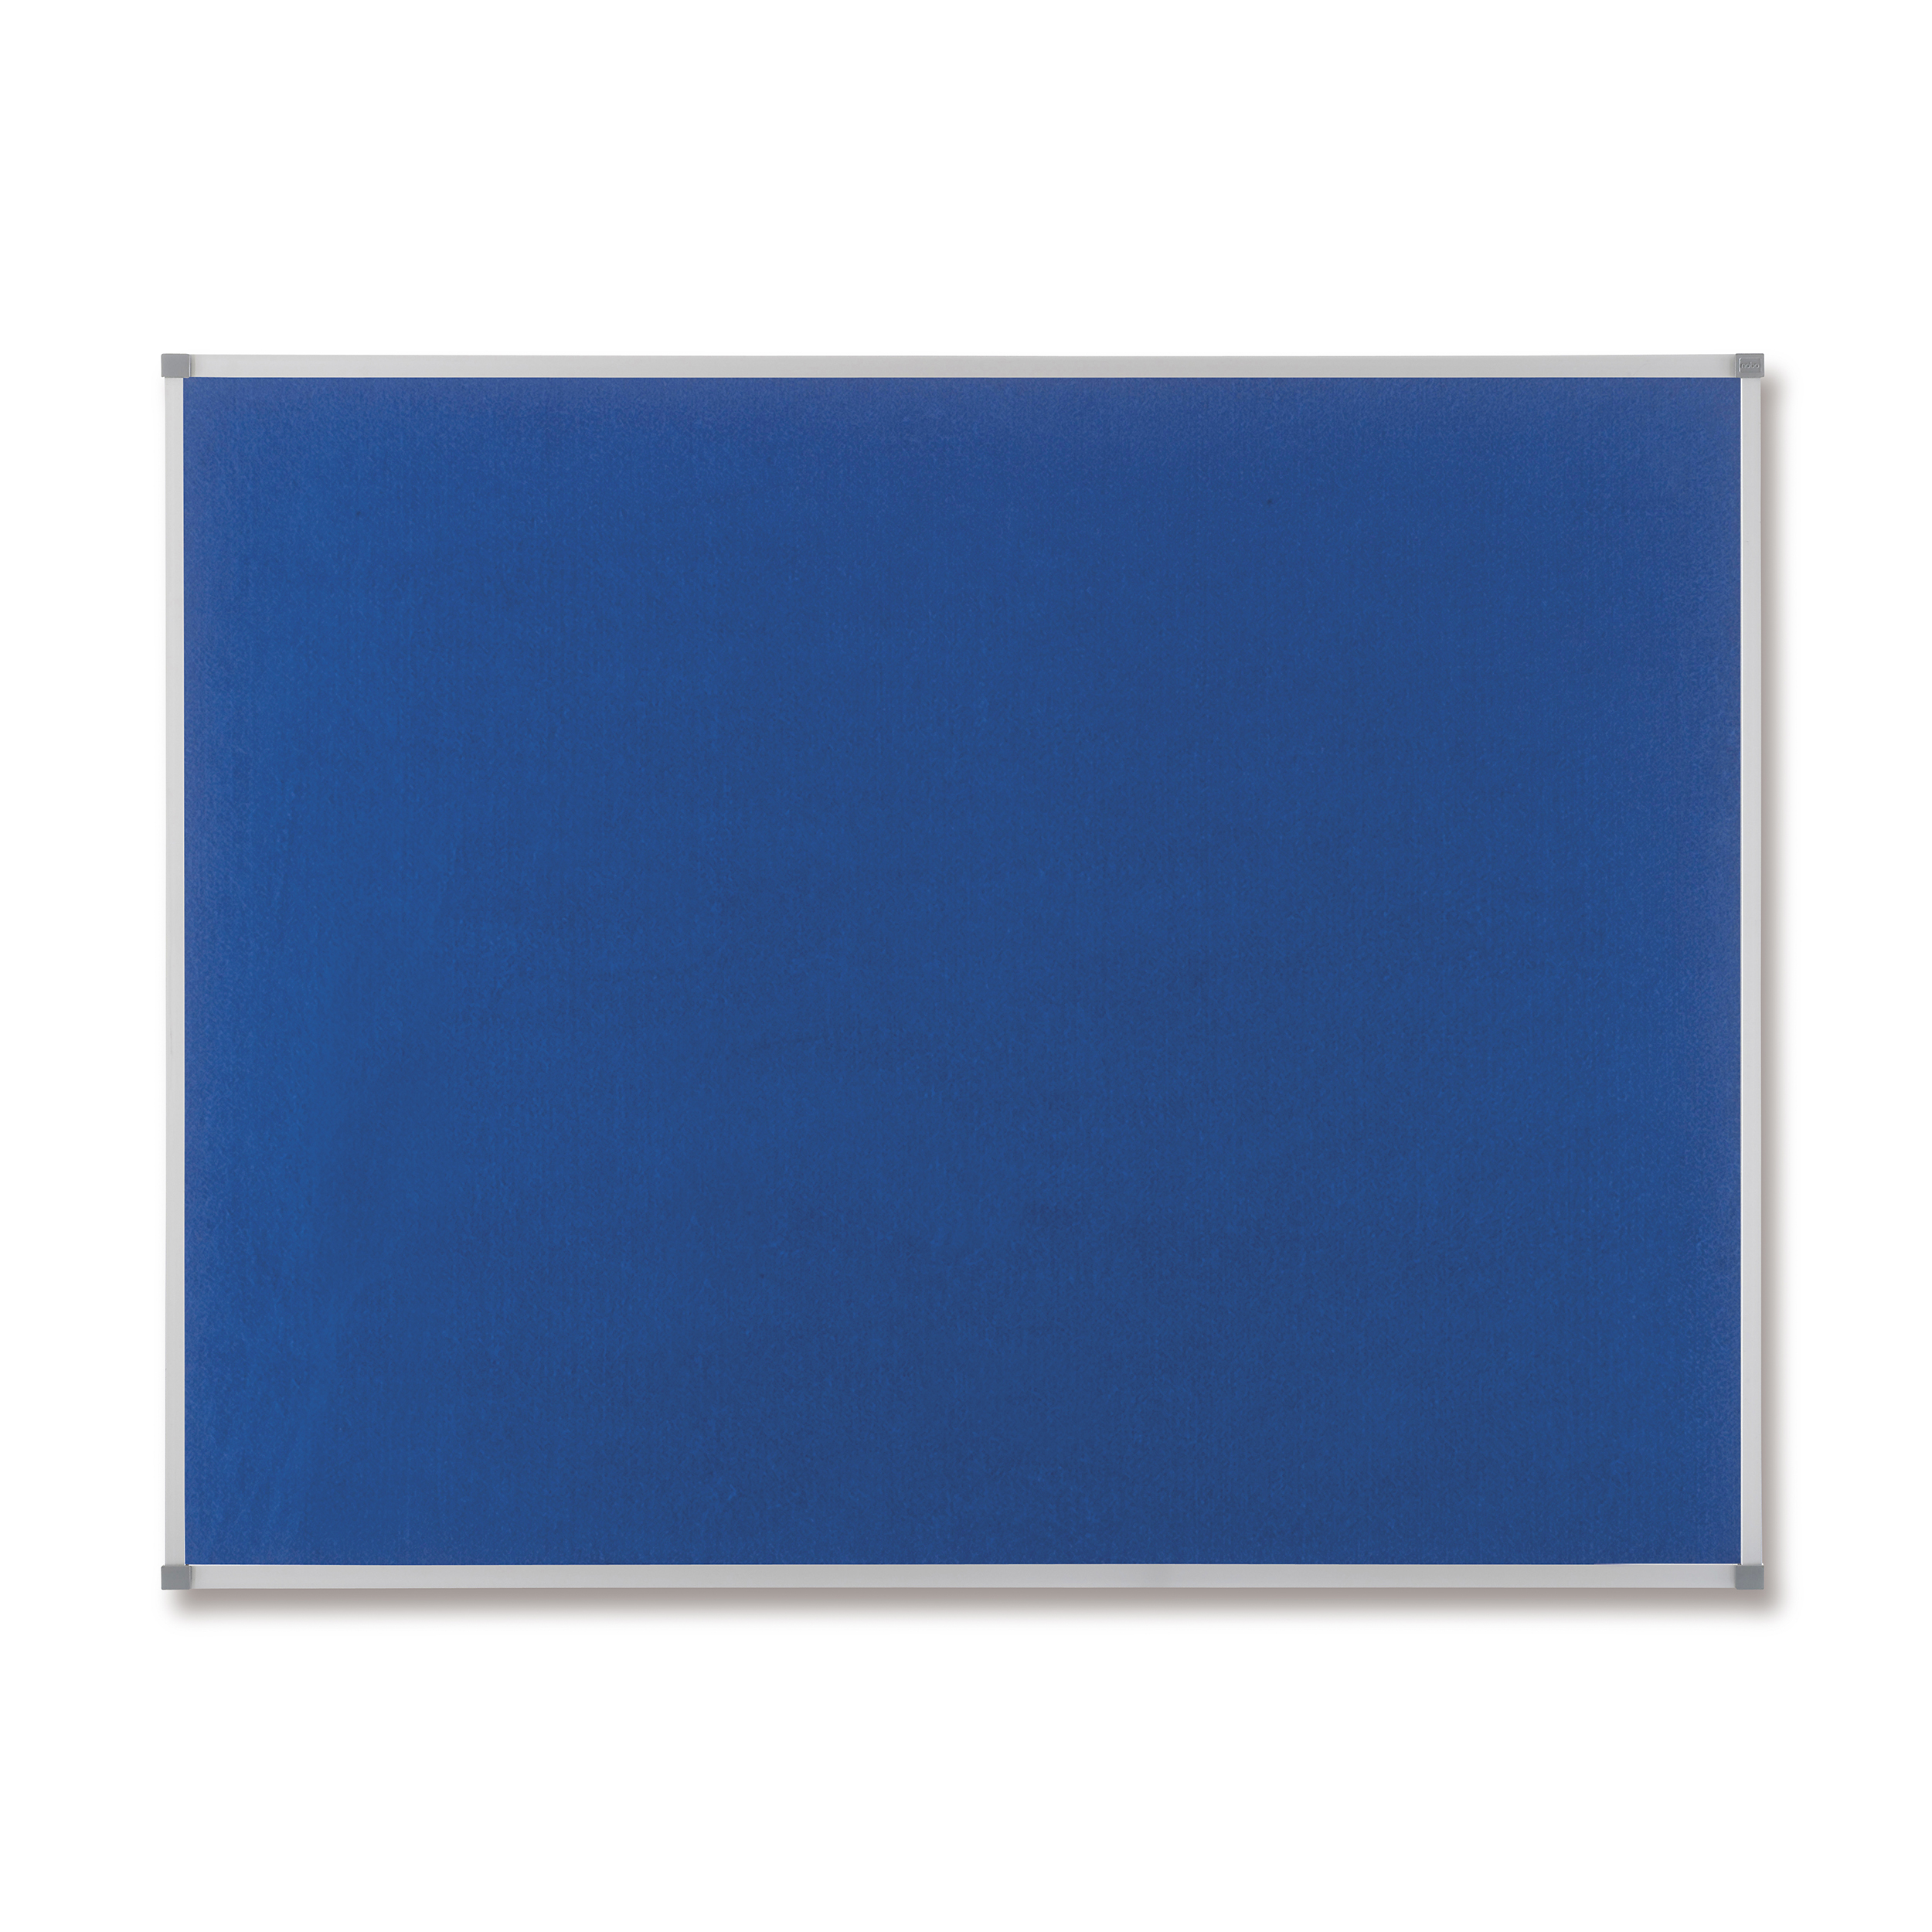 Image for Nobo Classic Noticeboard Felt with Aluminium Frame W900xH600mm Blue Ref 1900915